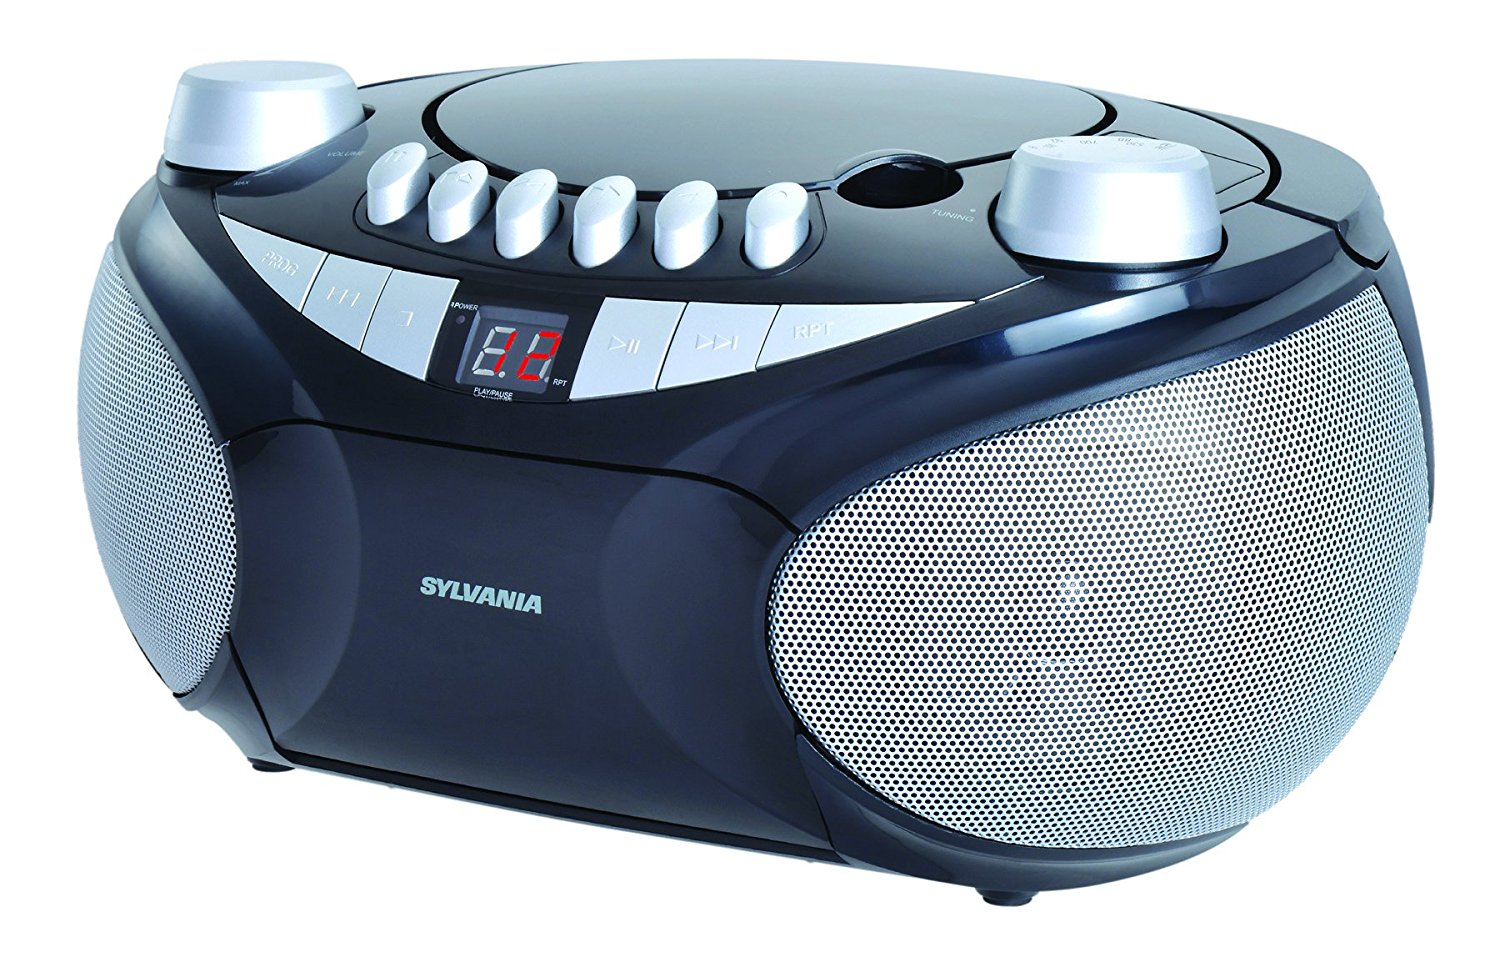 Sylvania Portable Cassette, CD, AM/FM Radio Boombox, with Cassette Player (SRCD286)